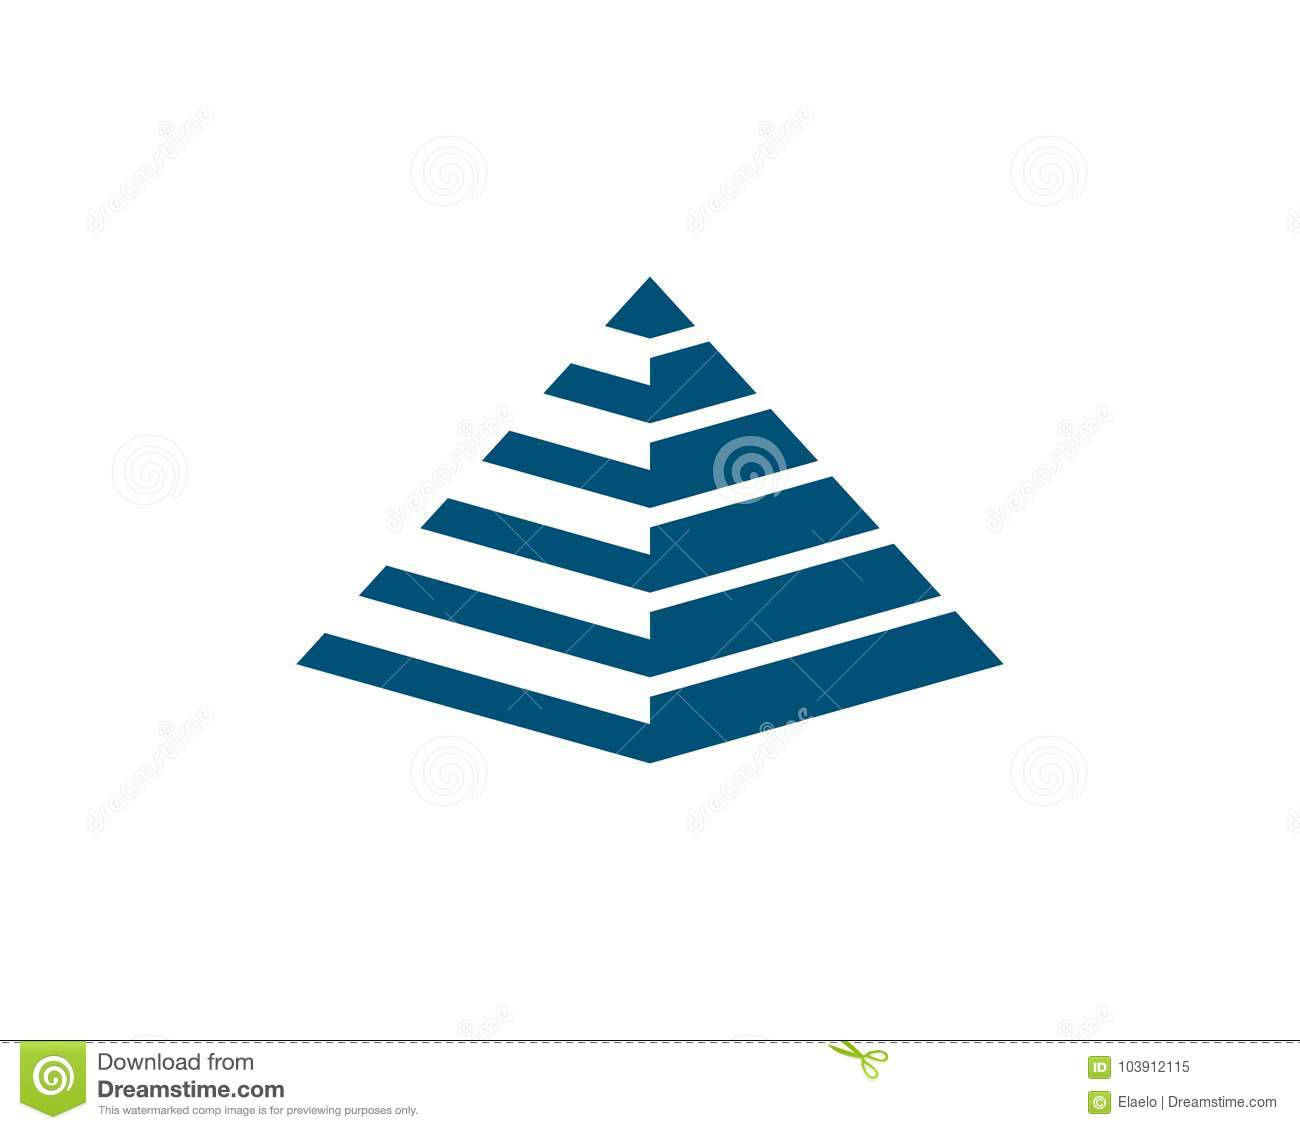 pyramid logo template stock vector illustration of card 103912115